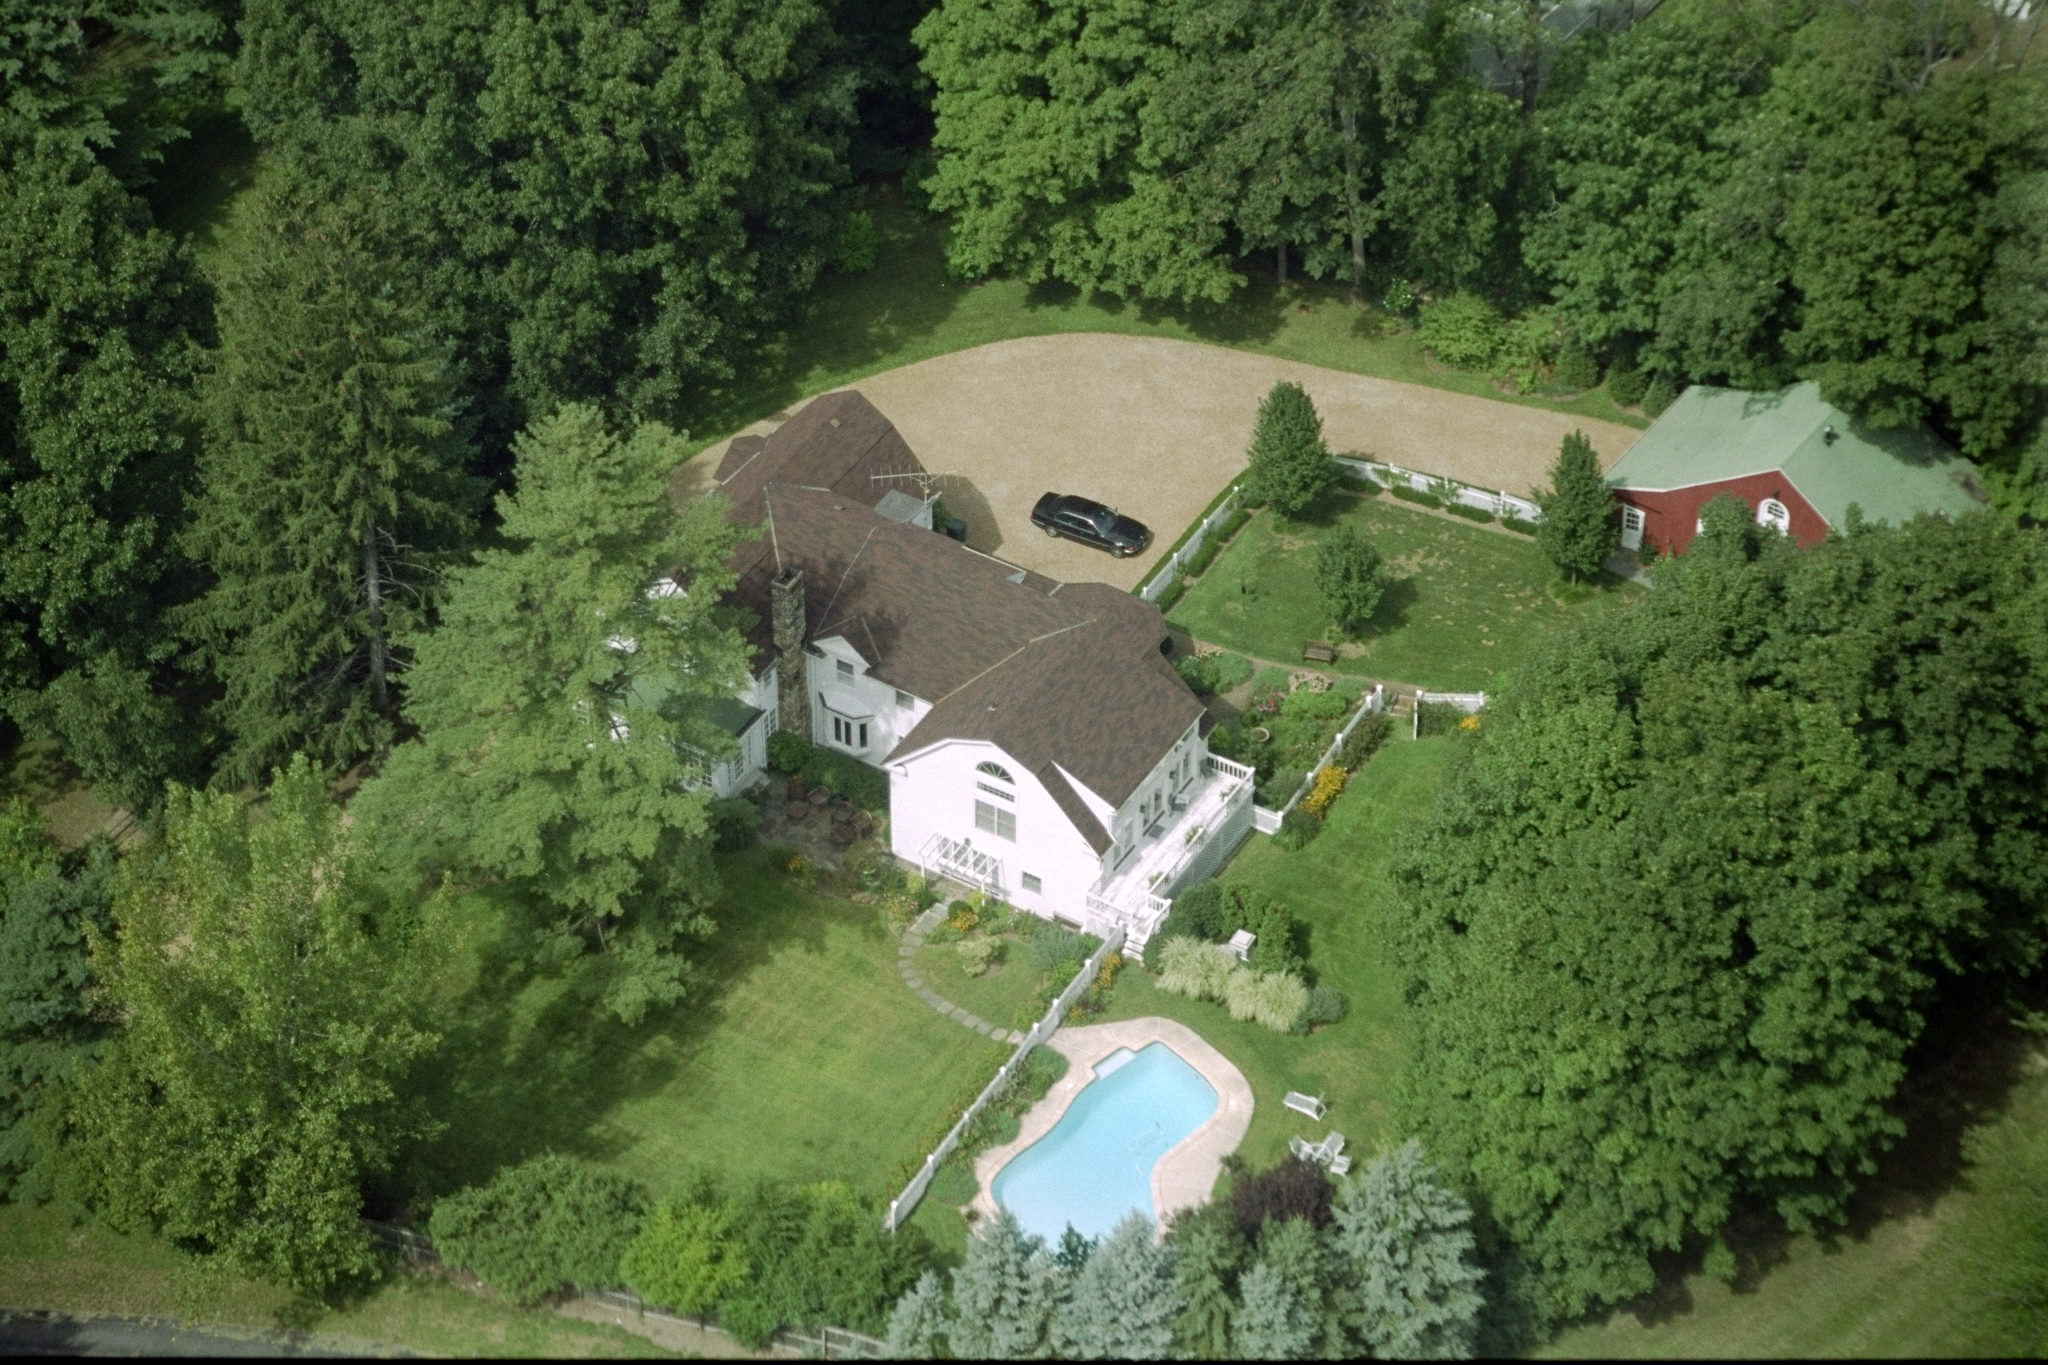 The home of President Bill Clinton and First Lady Hillary Rodham Clinton on Old House Lane in Chappaqua, N.Y on Sept. 3, 1999.